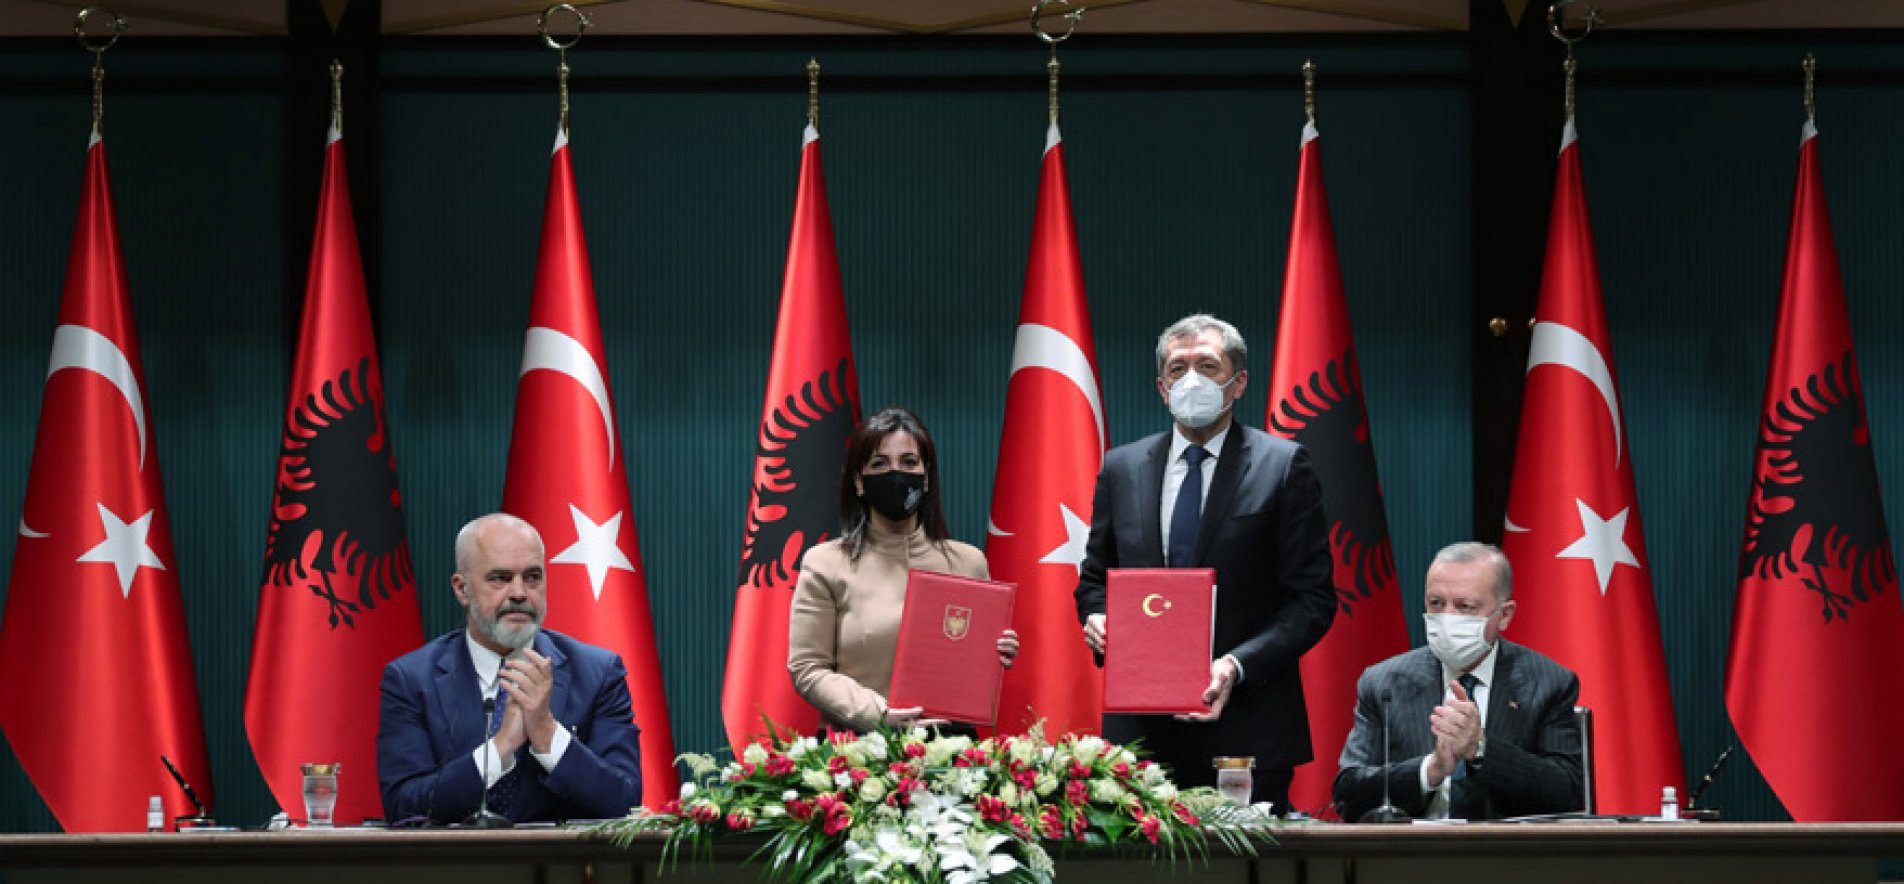 COOPERATION AGREEMENT ON EDUCATION WITH THE REPUBLIC OF ALBANIA